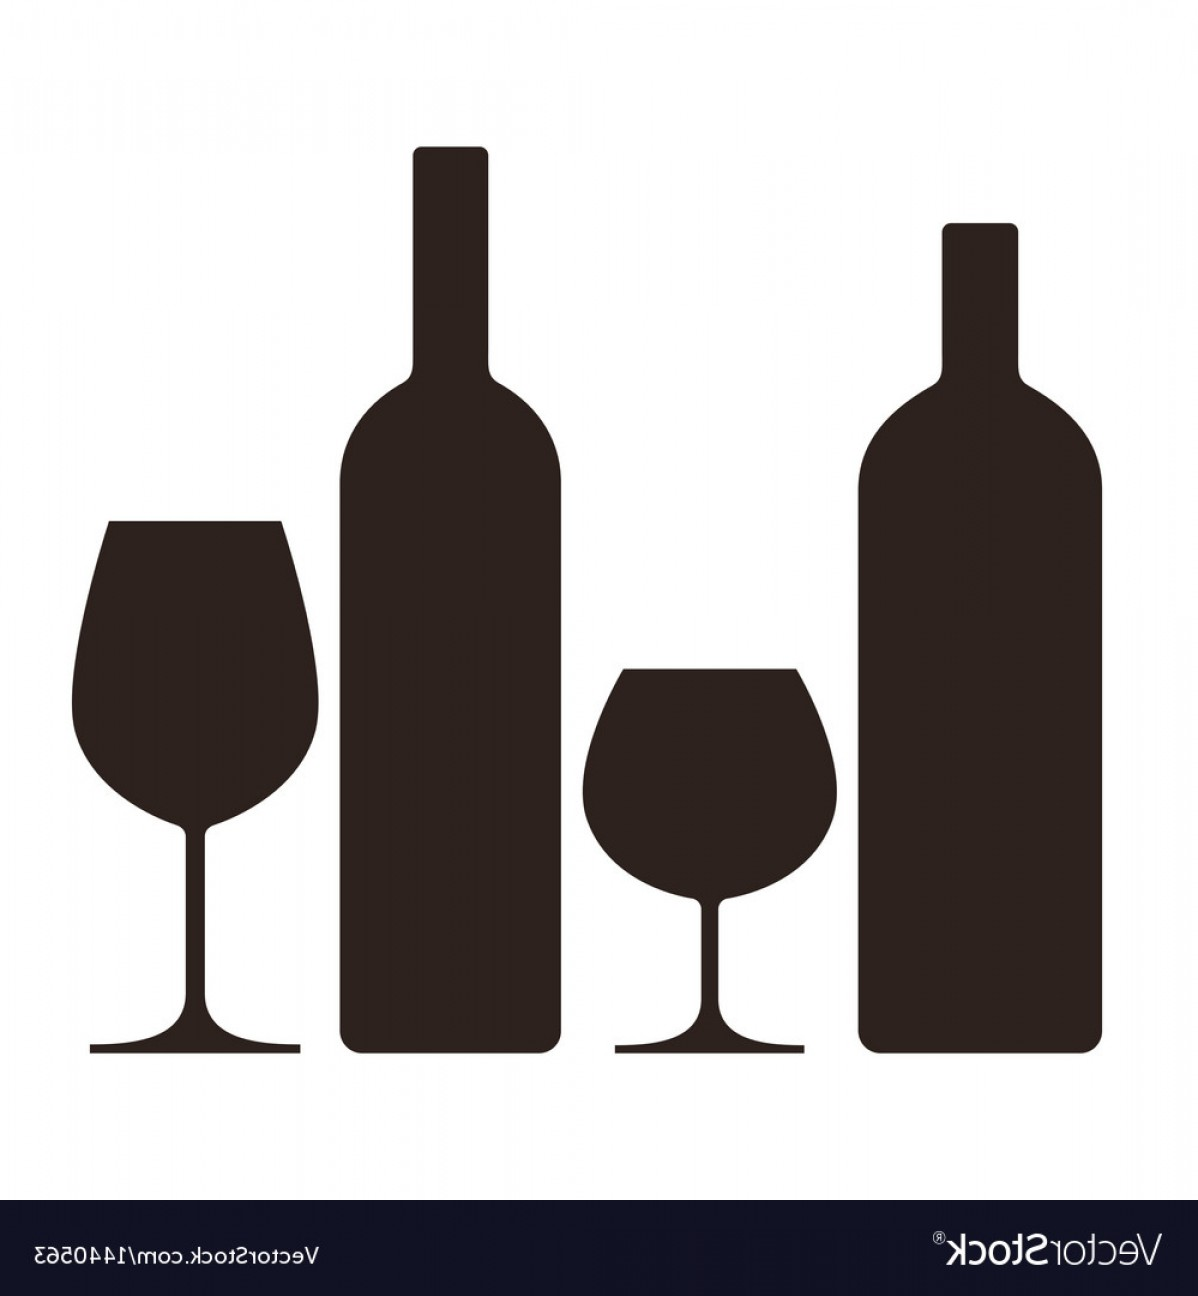 Alcohol Vector: Bottles And Glasses Of Alcohol Vector